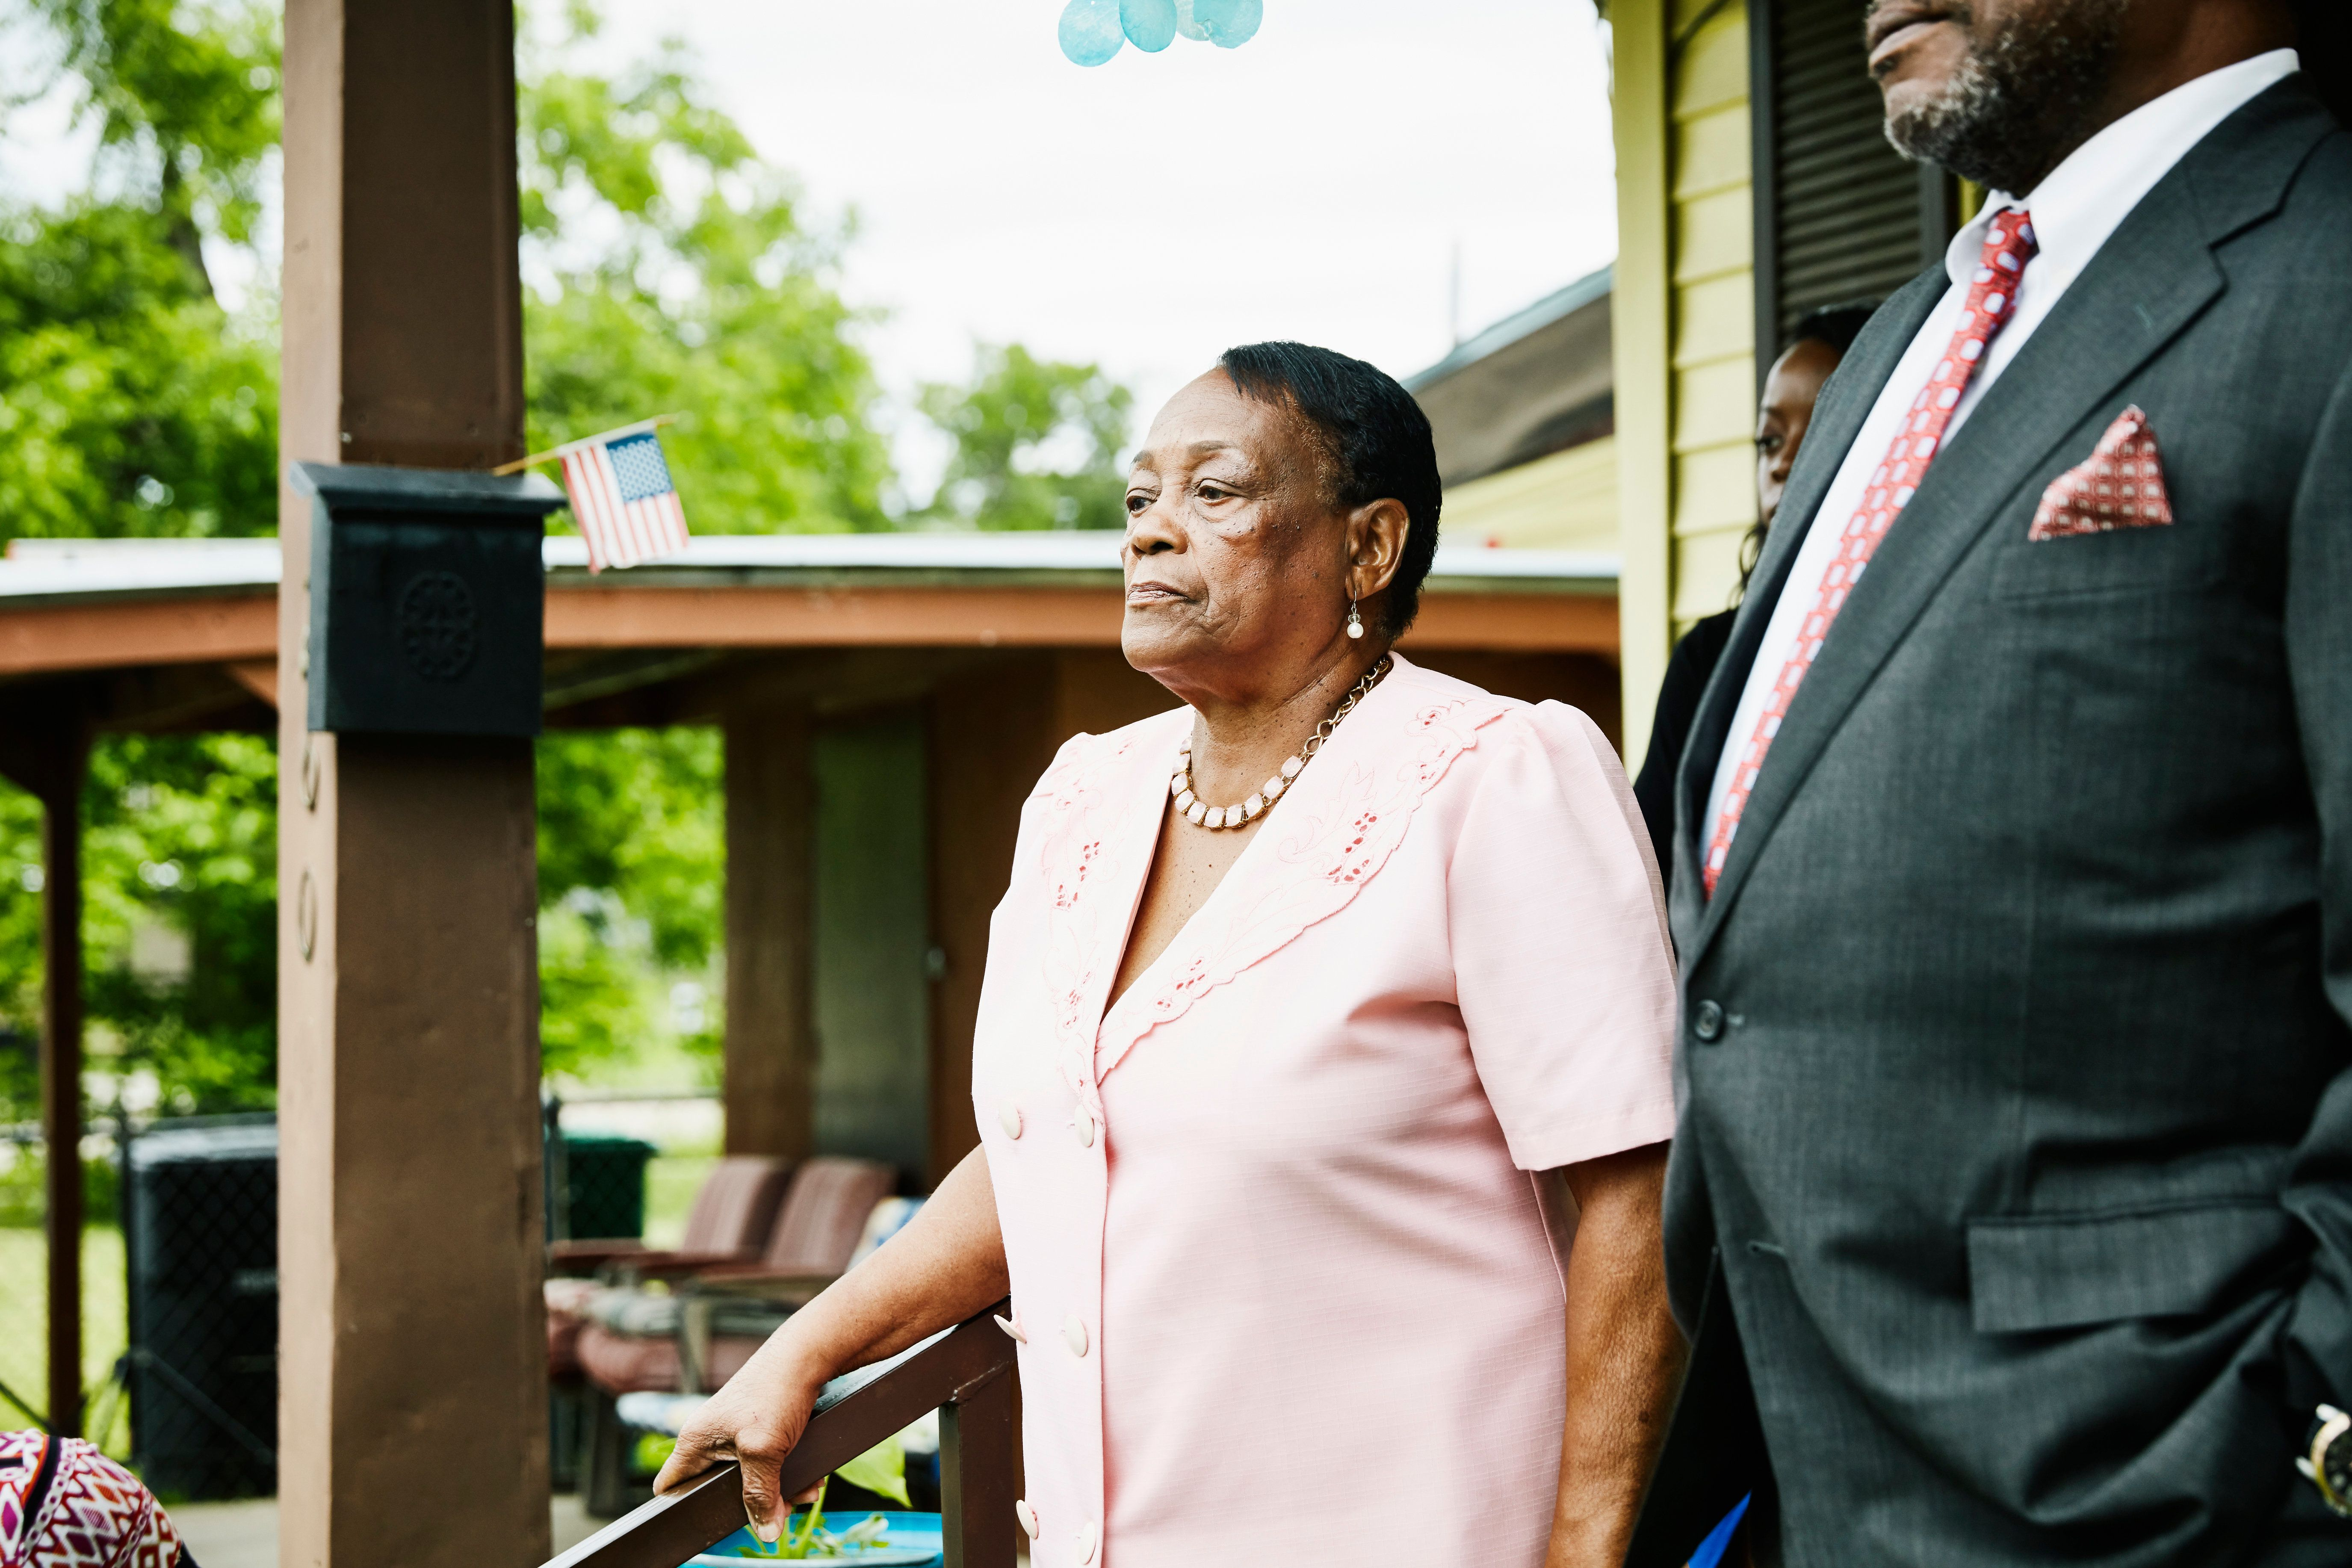 An elderly black woman stands in front of porch dressed ready for church.